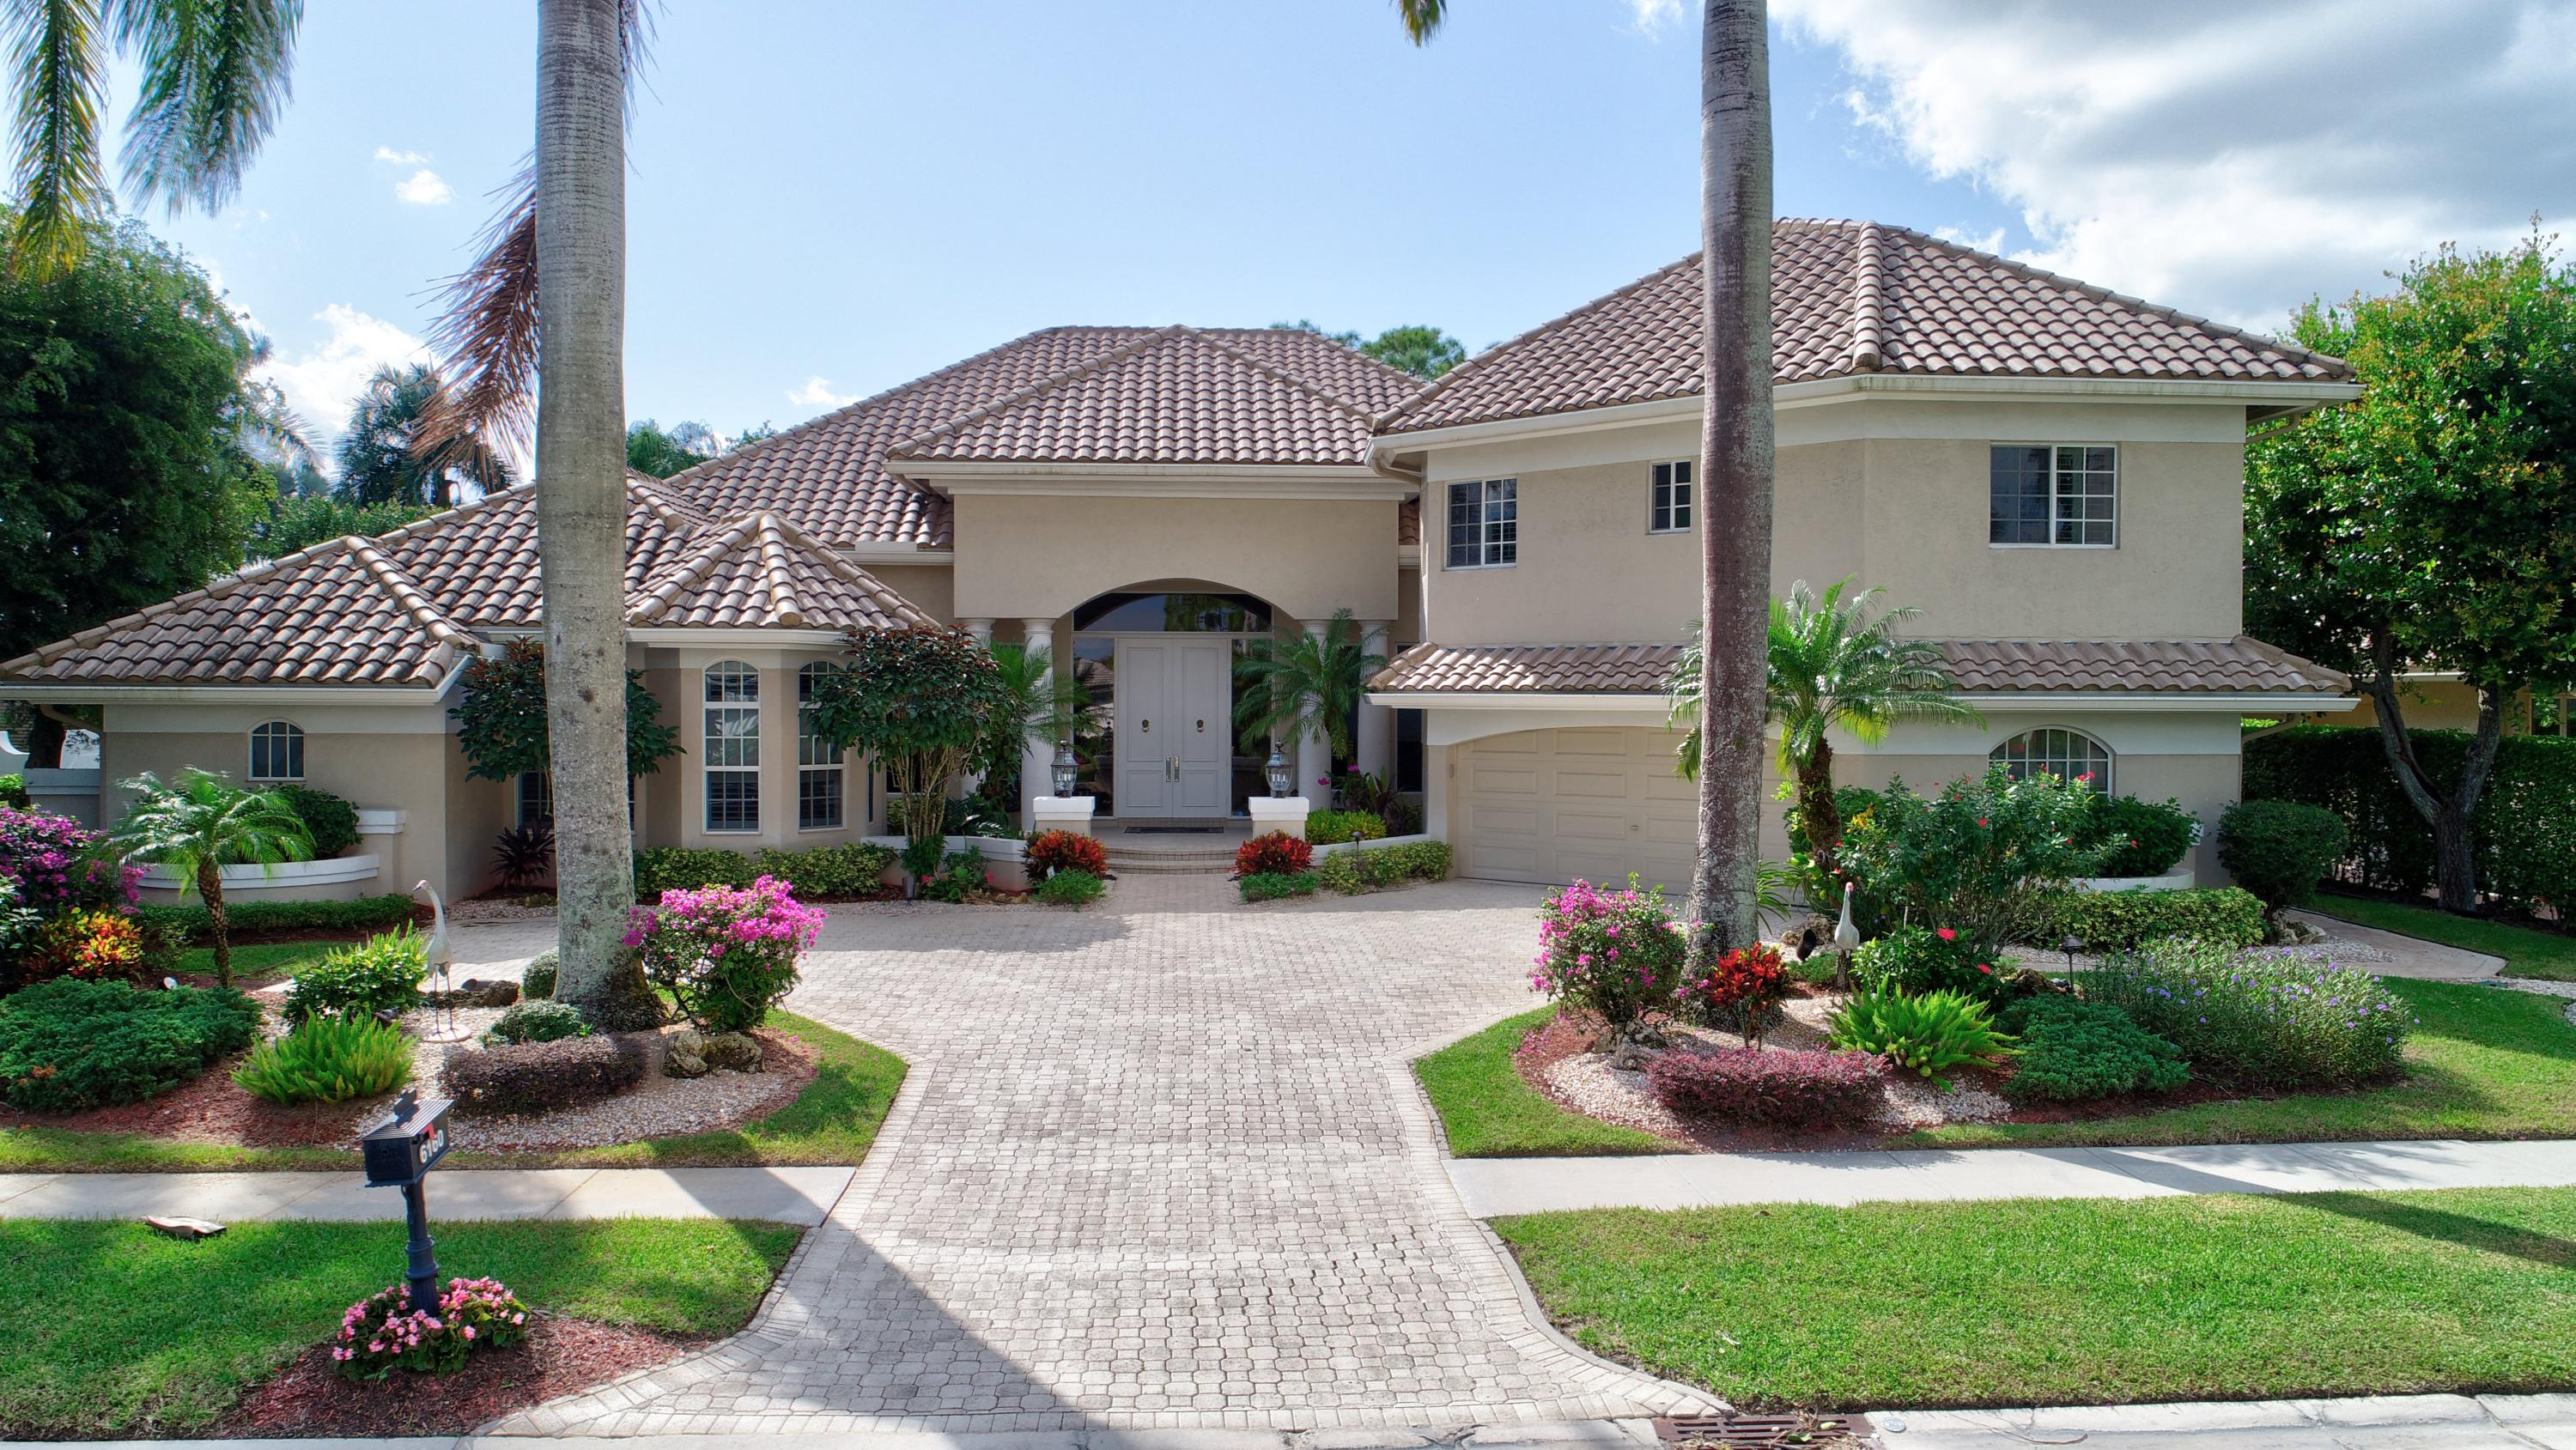 Delray Beach: Hollows - listed at 1,099,000 (6160 Hollows Lane)